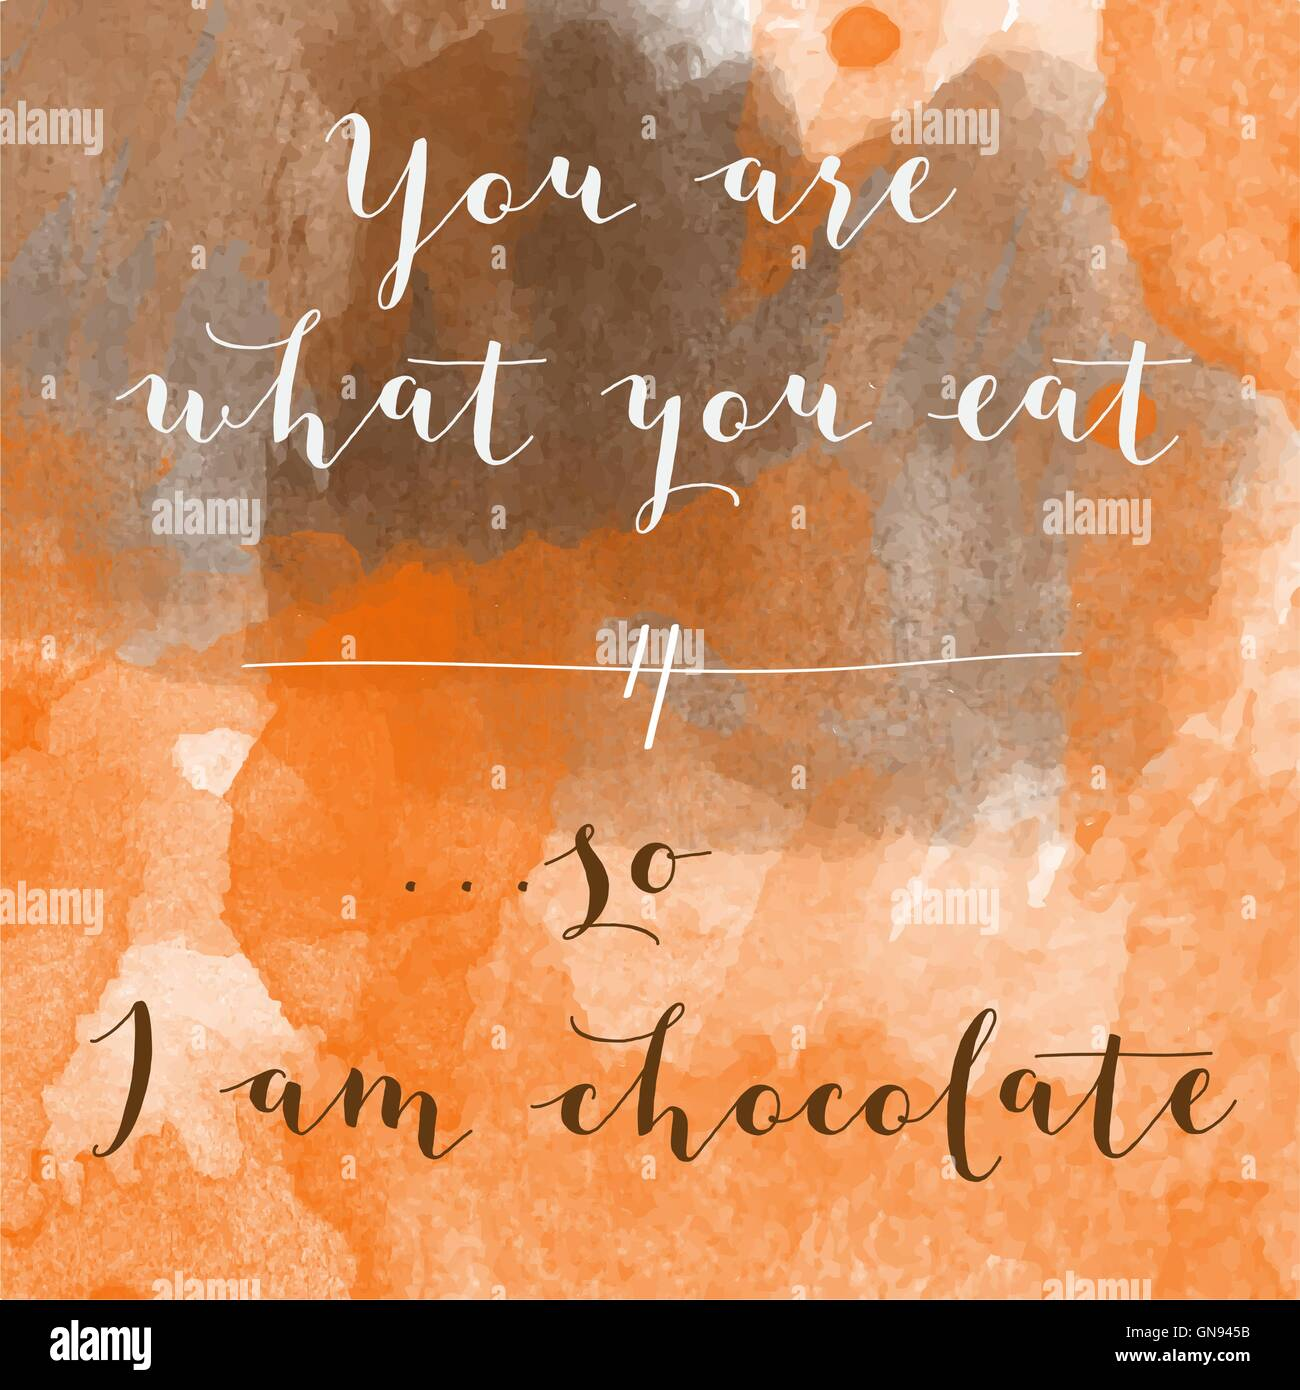 You are what you eat, so I am chocolate motivation watercolor - Stock Vector